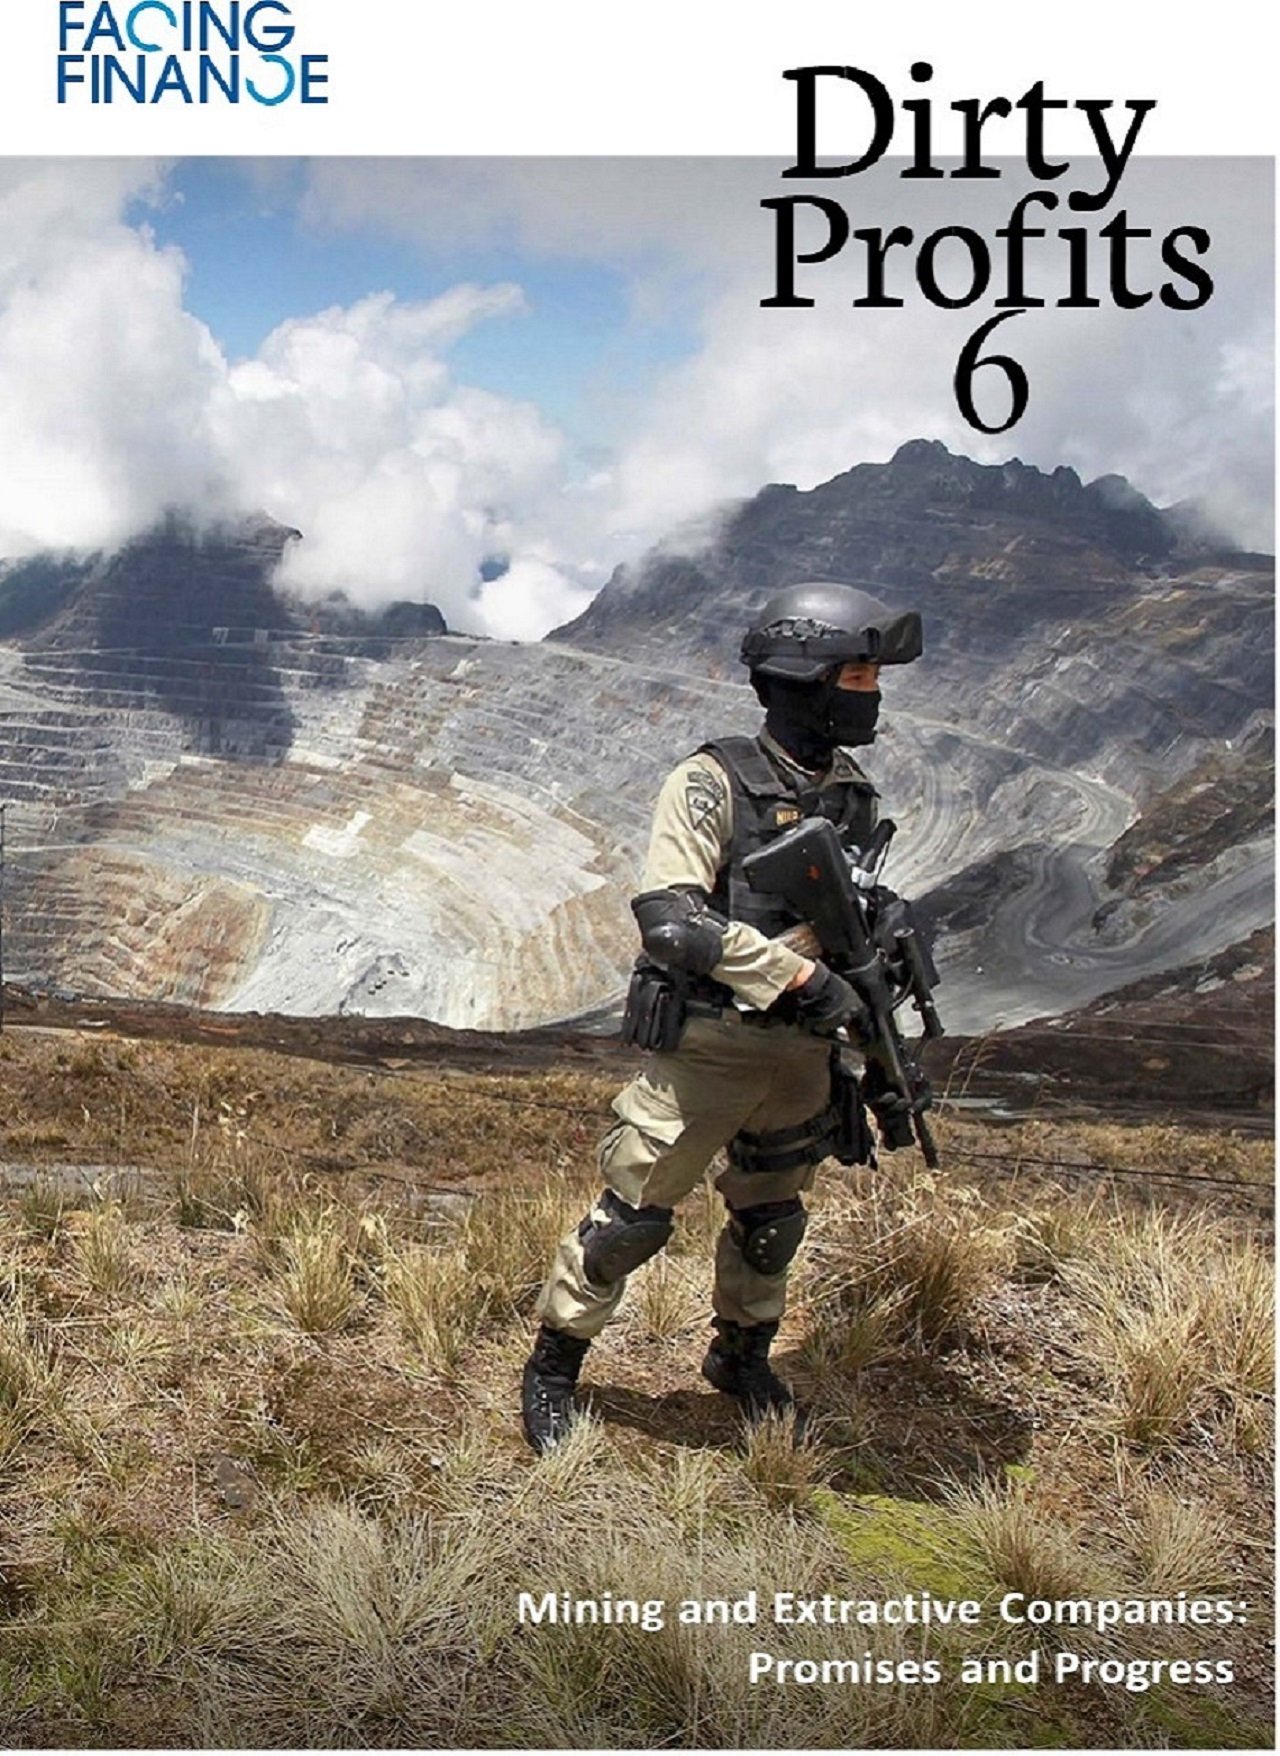 Dirty-Profits-6-cover-image